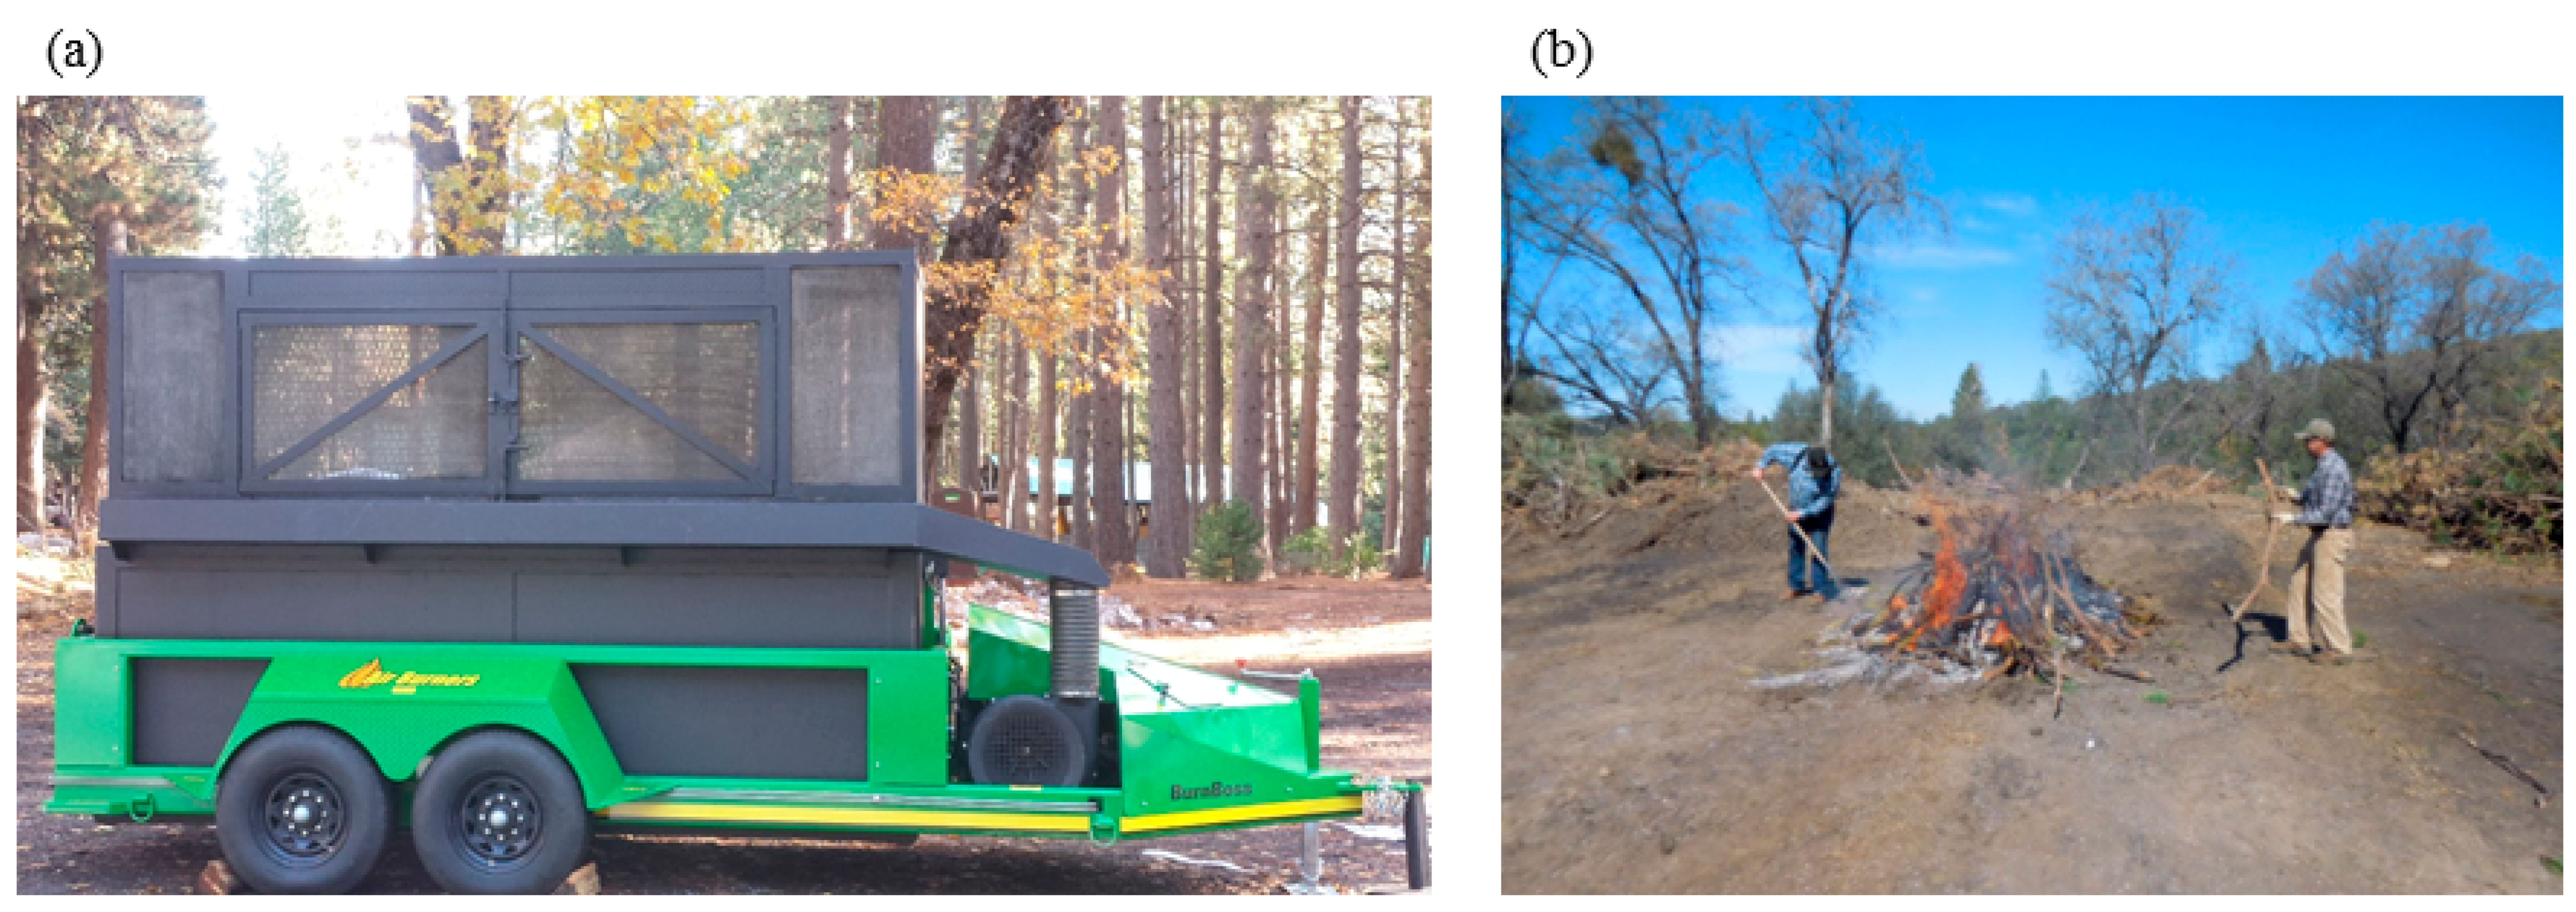 Forests | Free Full Text | Comparison Of Heat Transfer And Soil ...